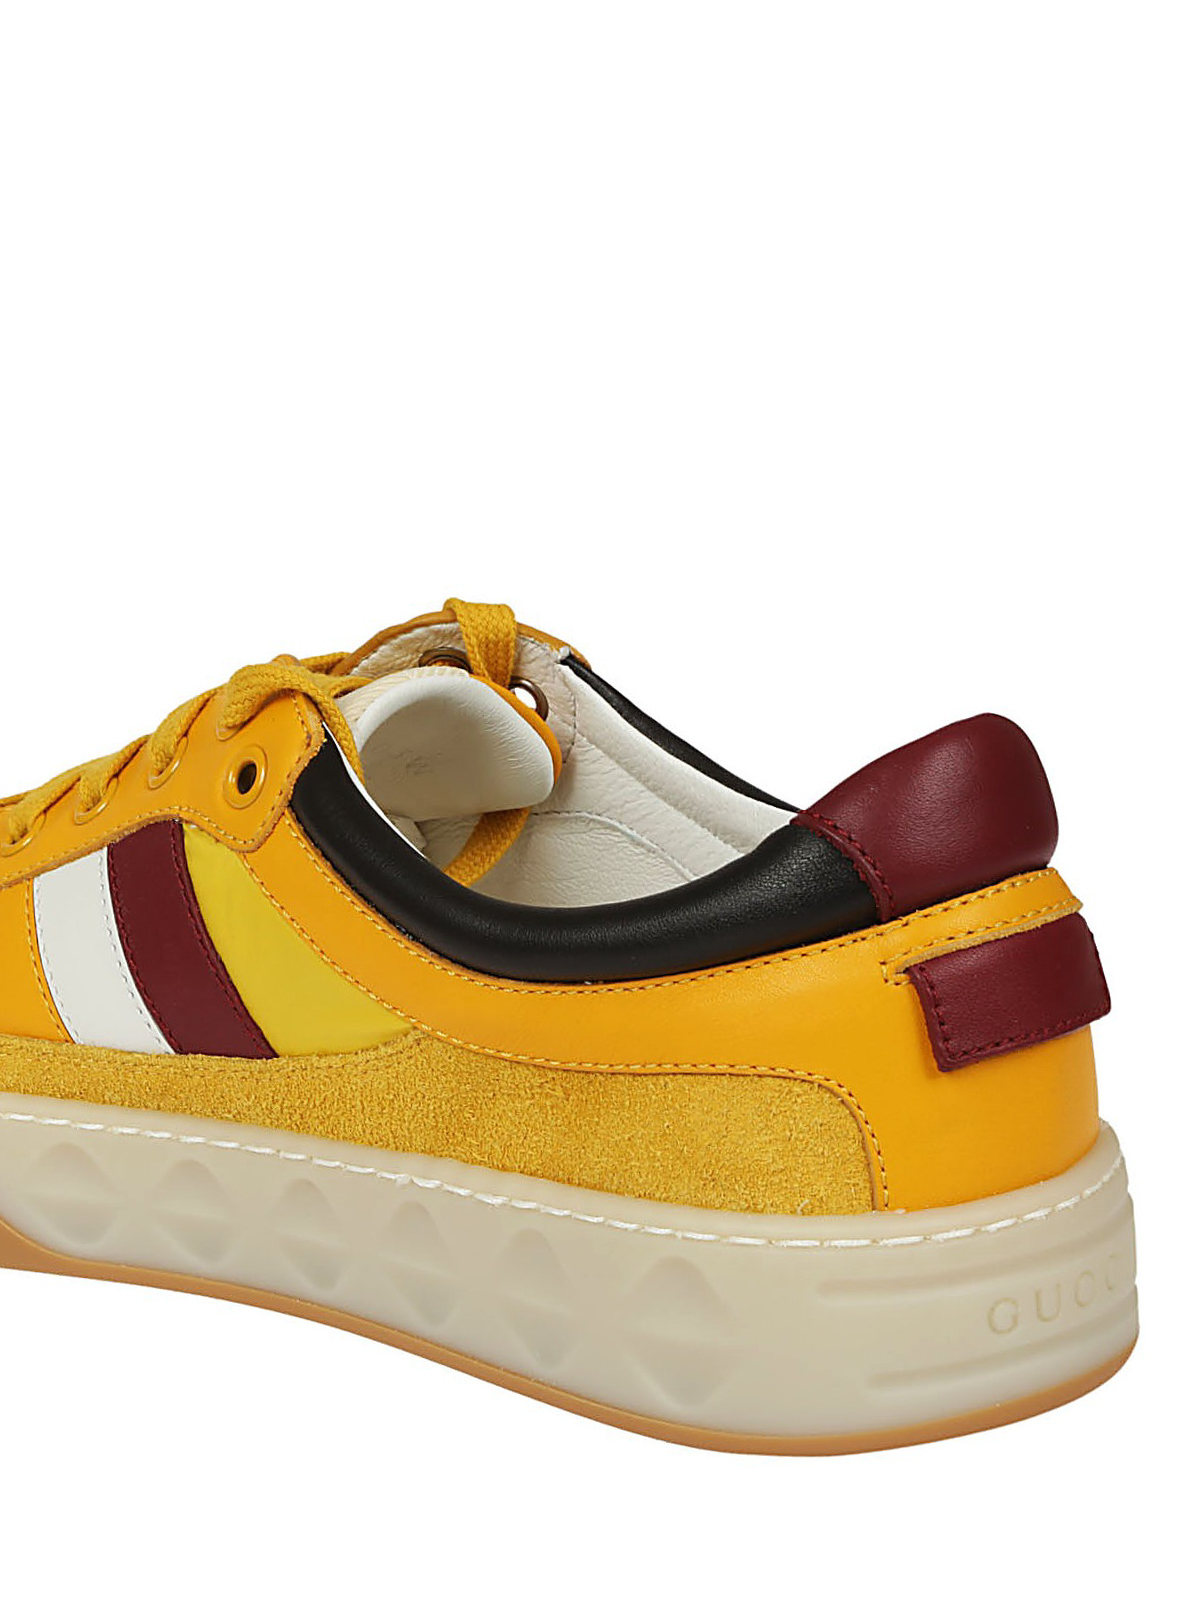 937f91dd0 Gucci - Yellow multi fabric sneakers - trainers - 494761D6Z40G7666